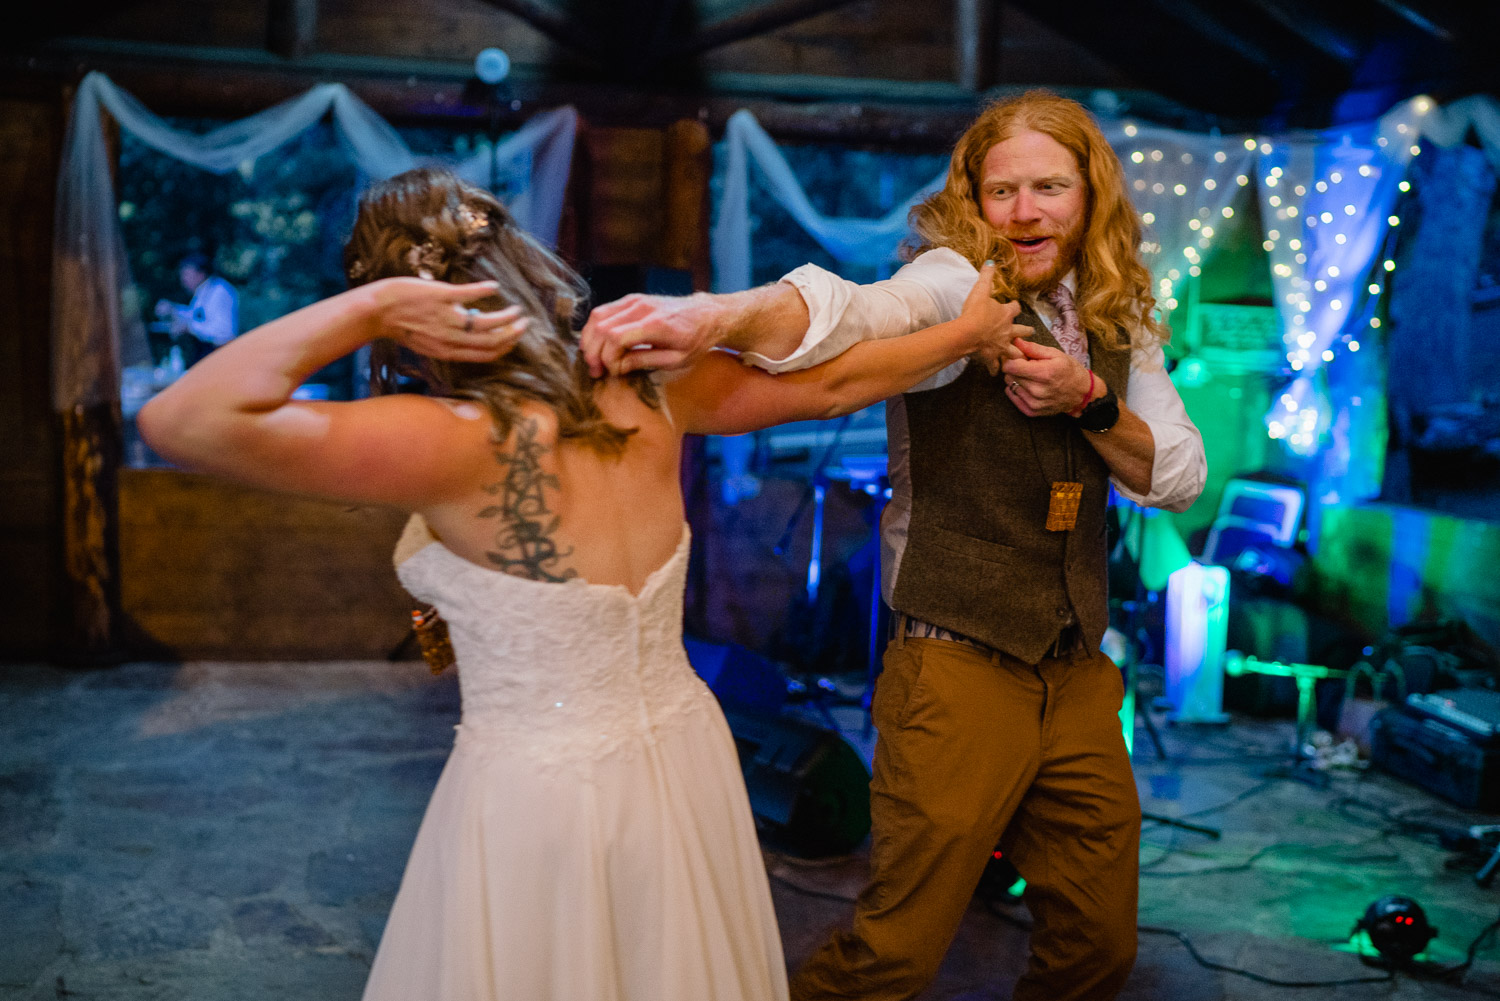 bride and groom dance at night campground wedding